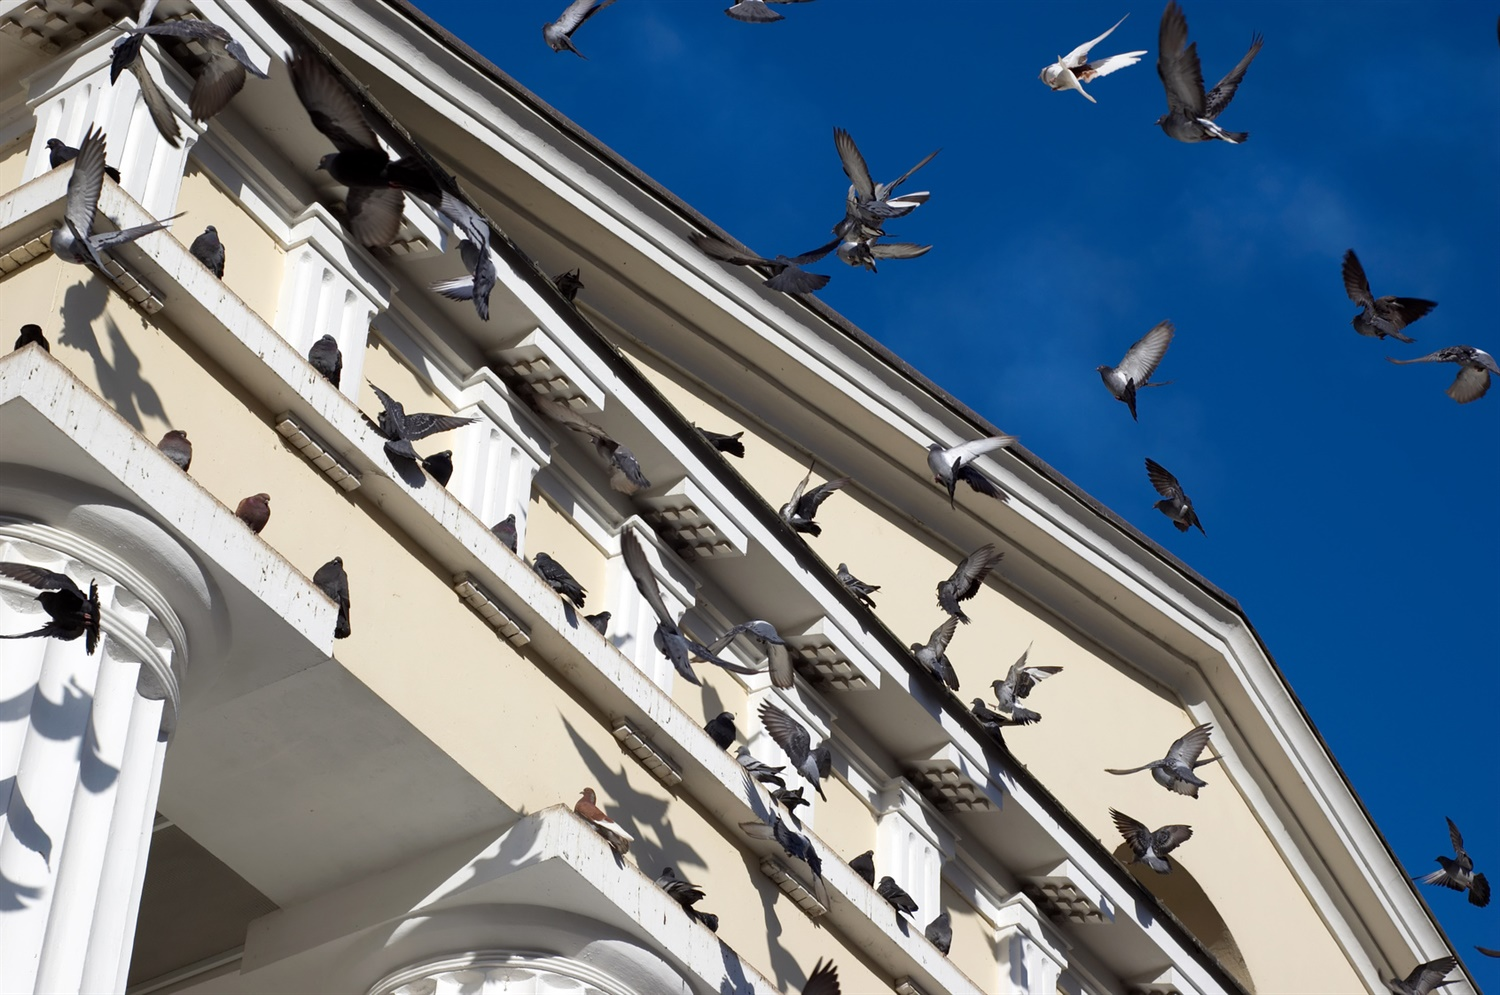 birds-on-a-building-about-title-image